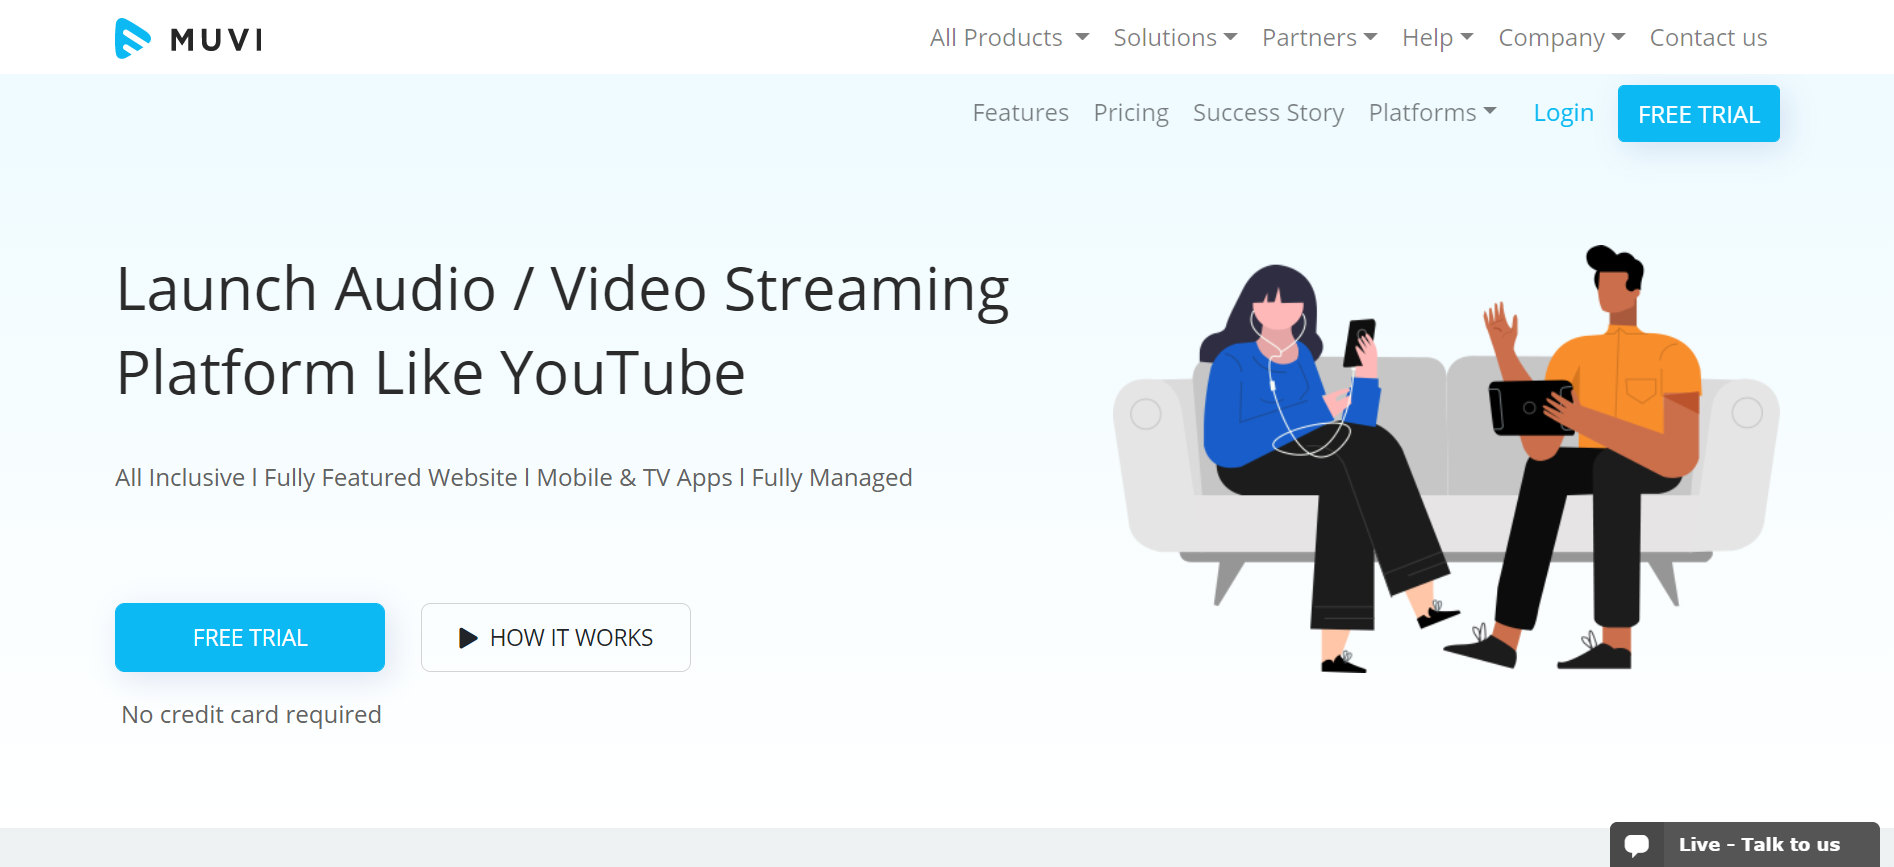 Muvi video streaming solution